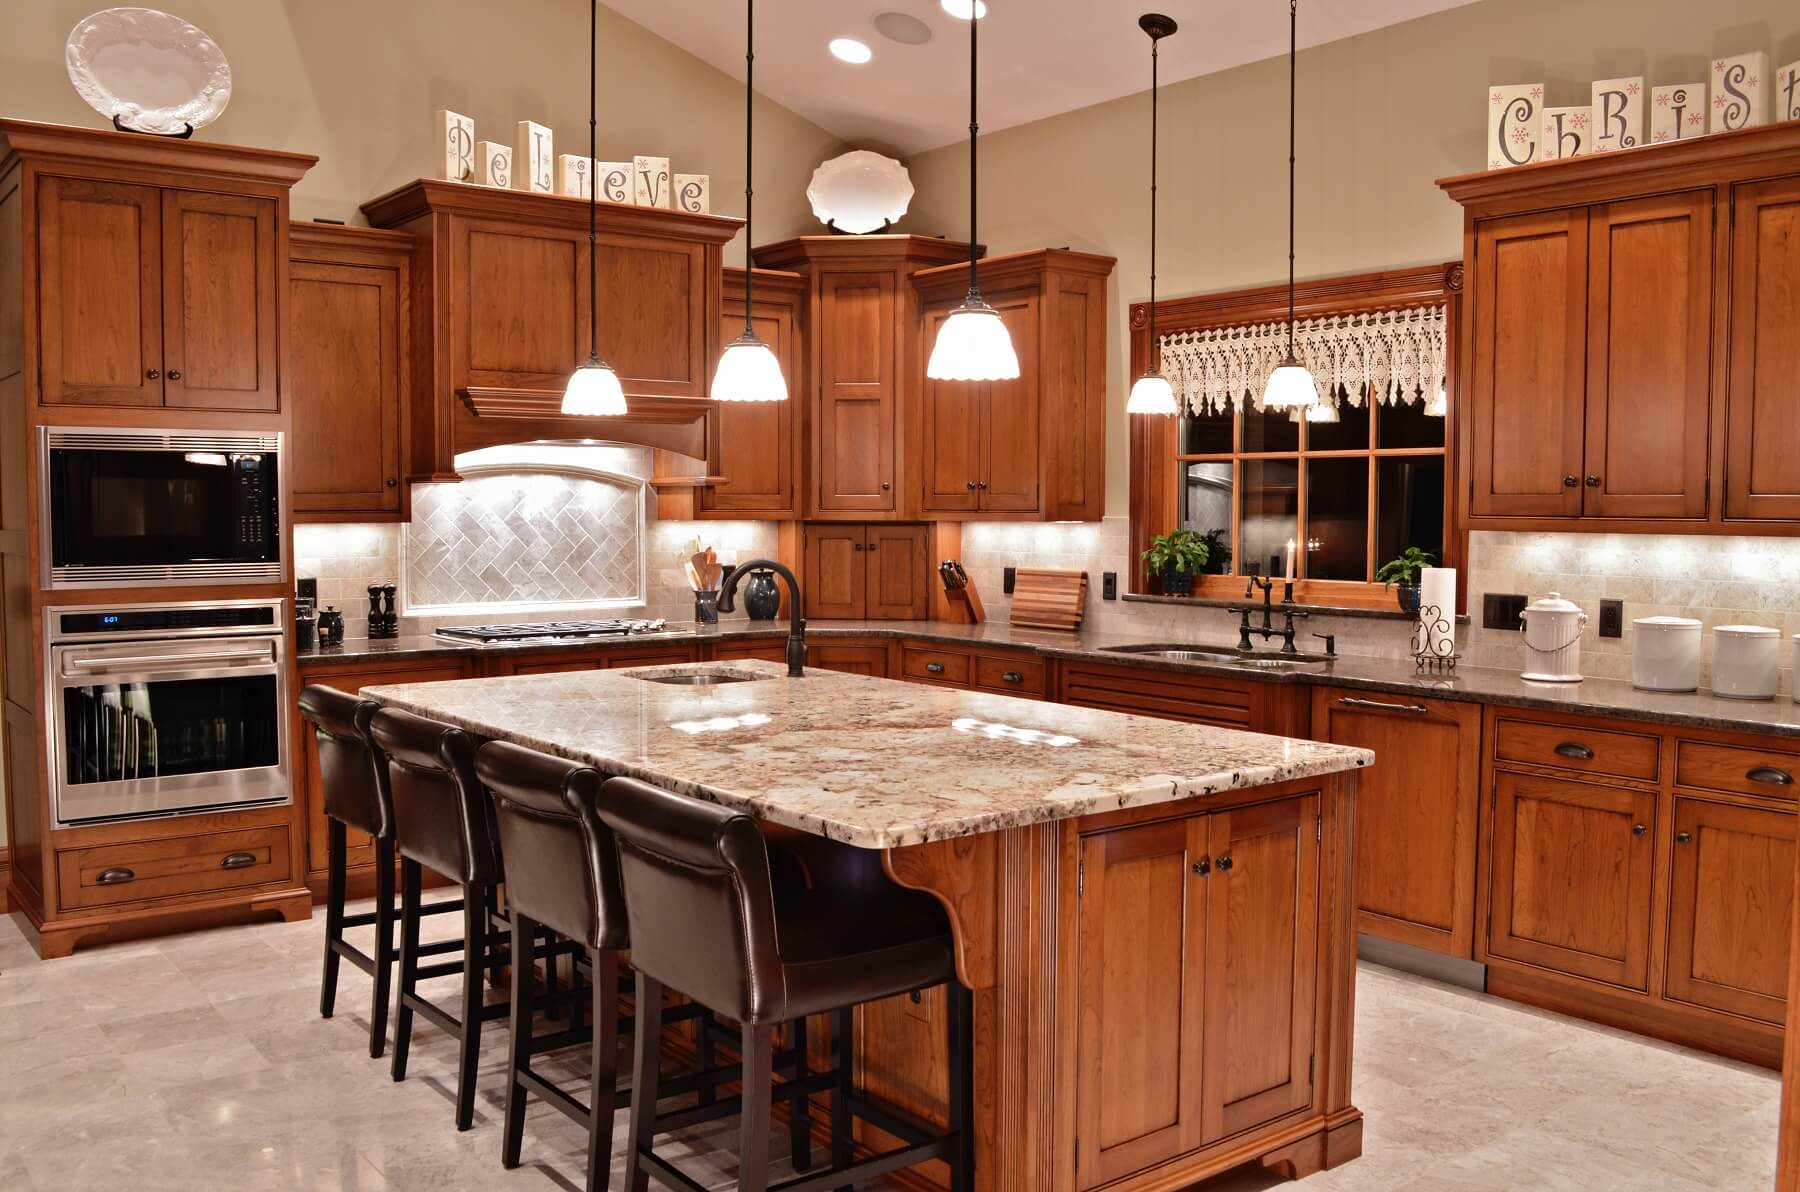 Custom Cabinetry   Ohio Residential and Commercial Woodworking